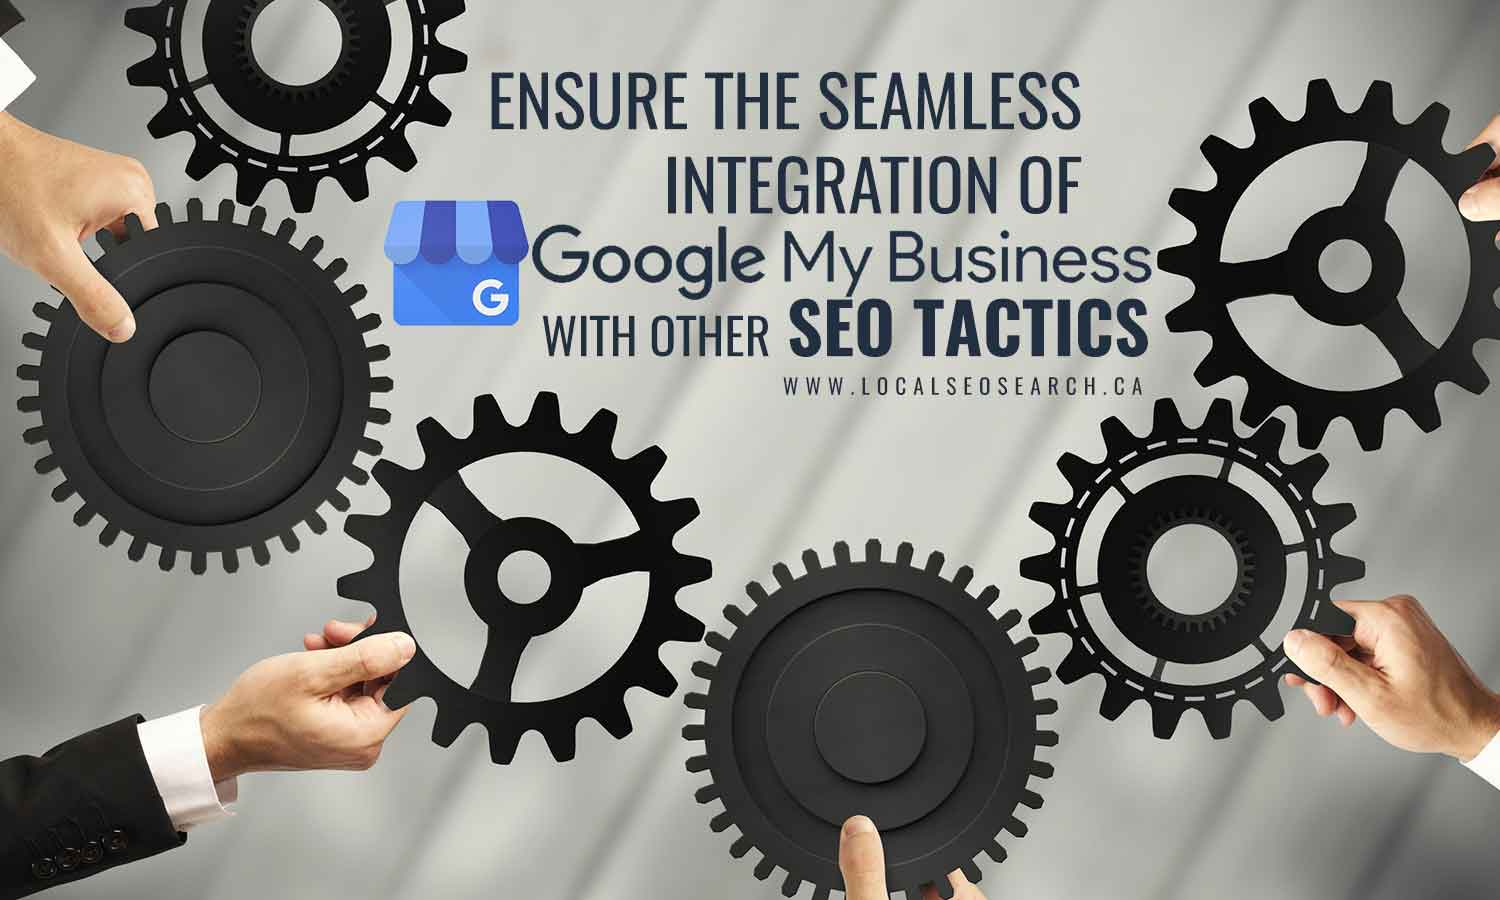 Ensure seamless integration Google My Business